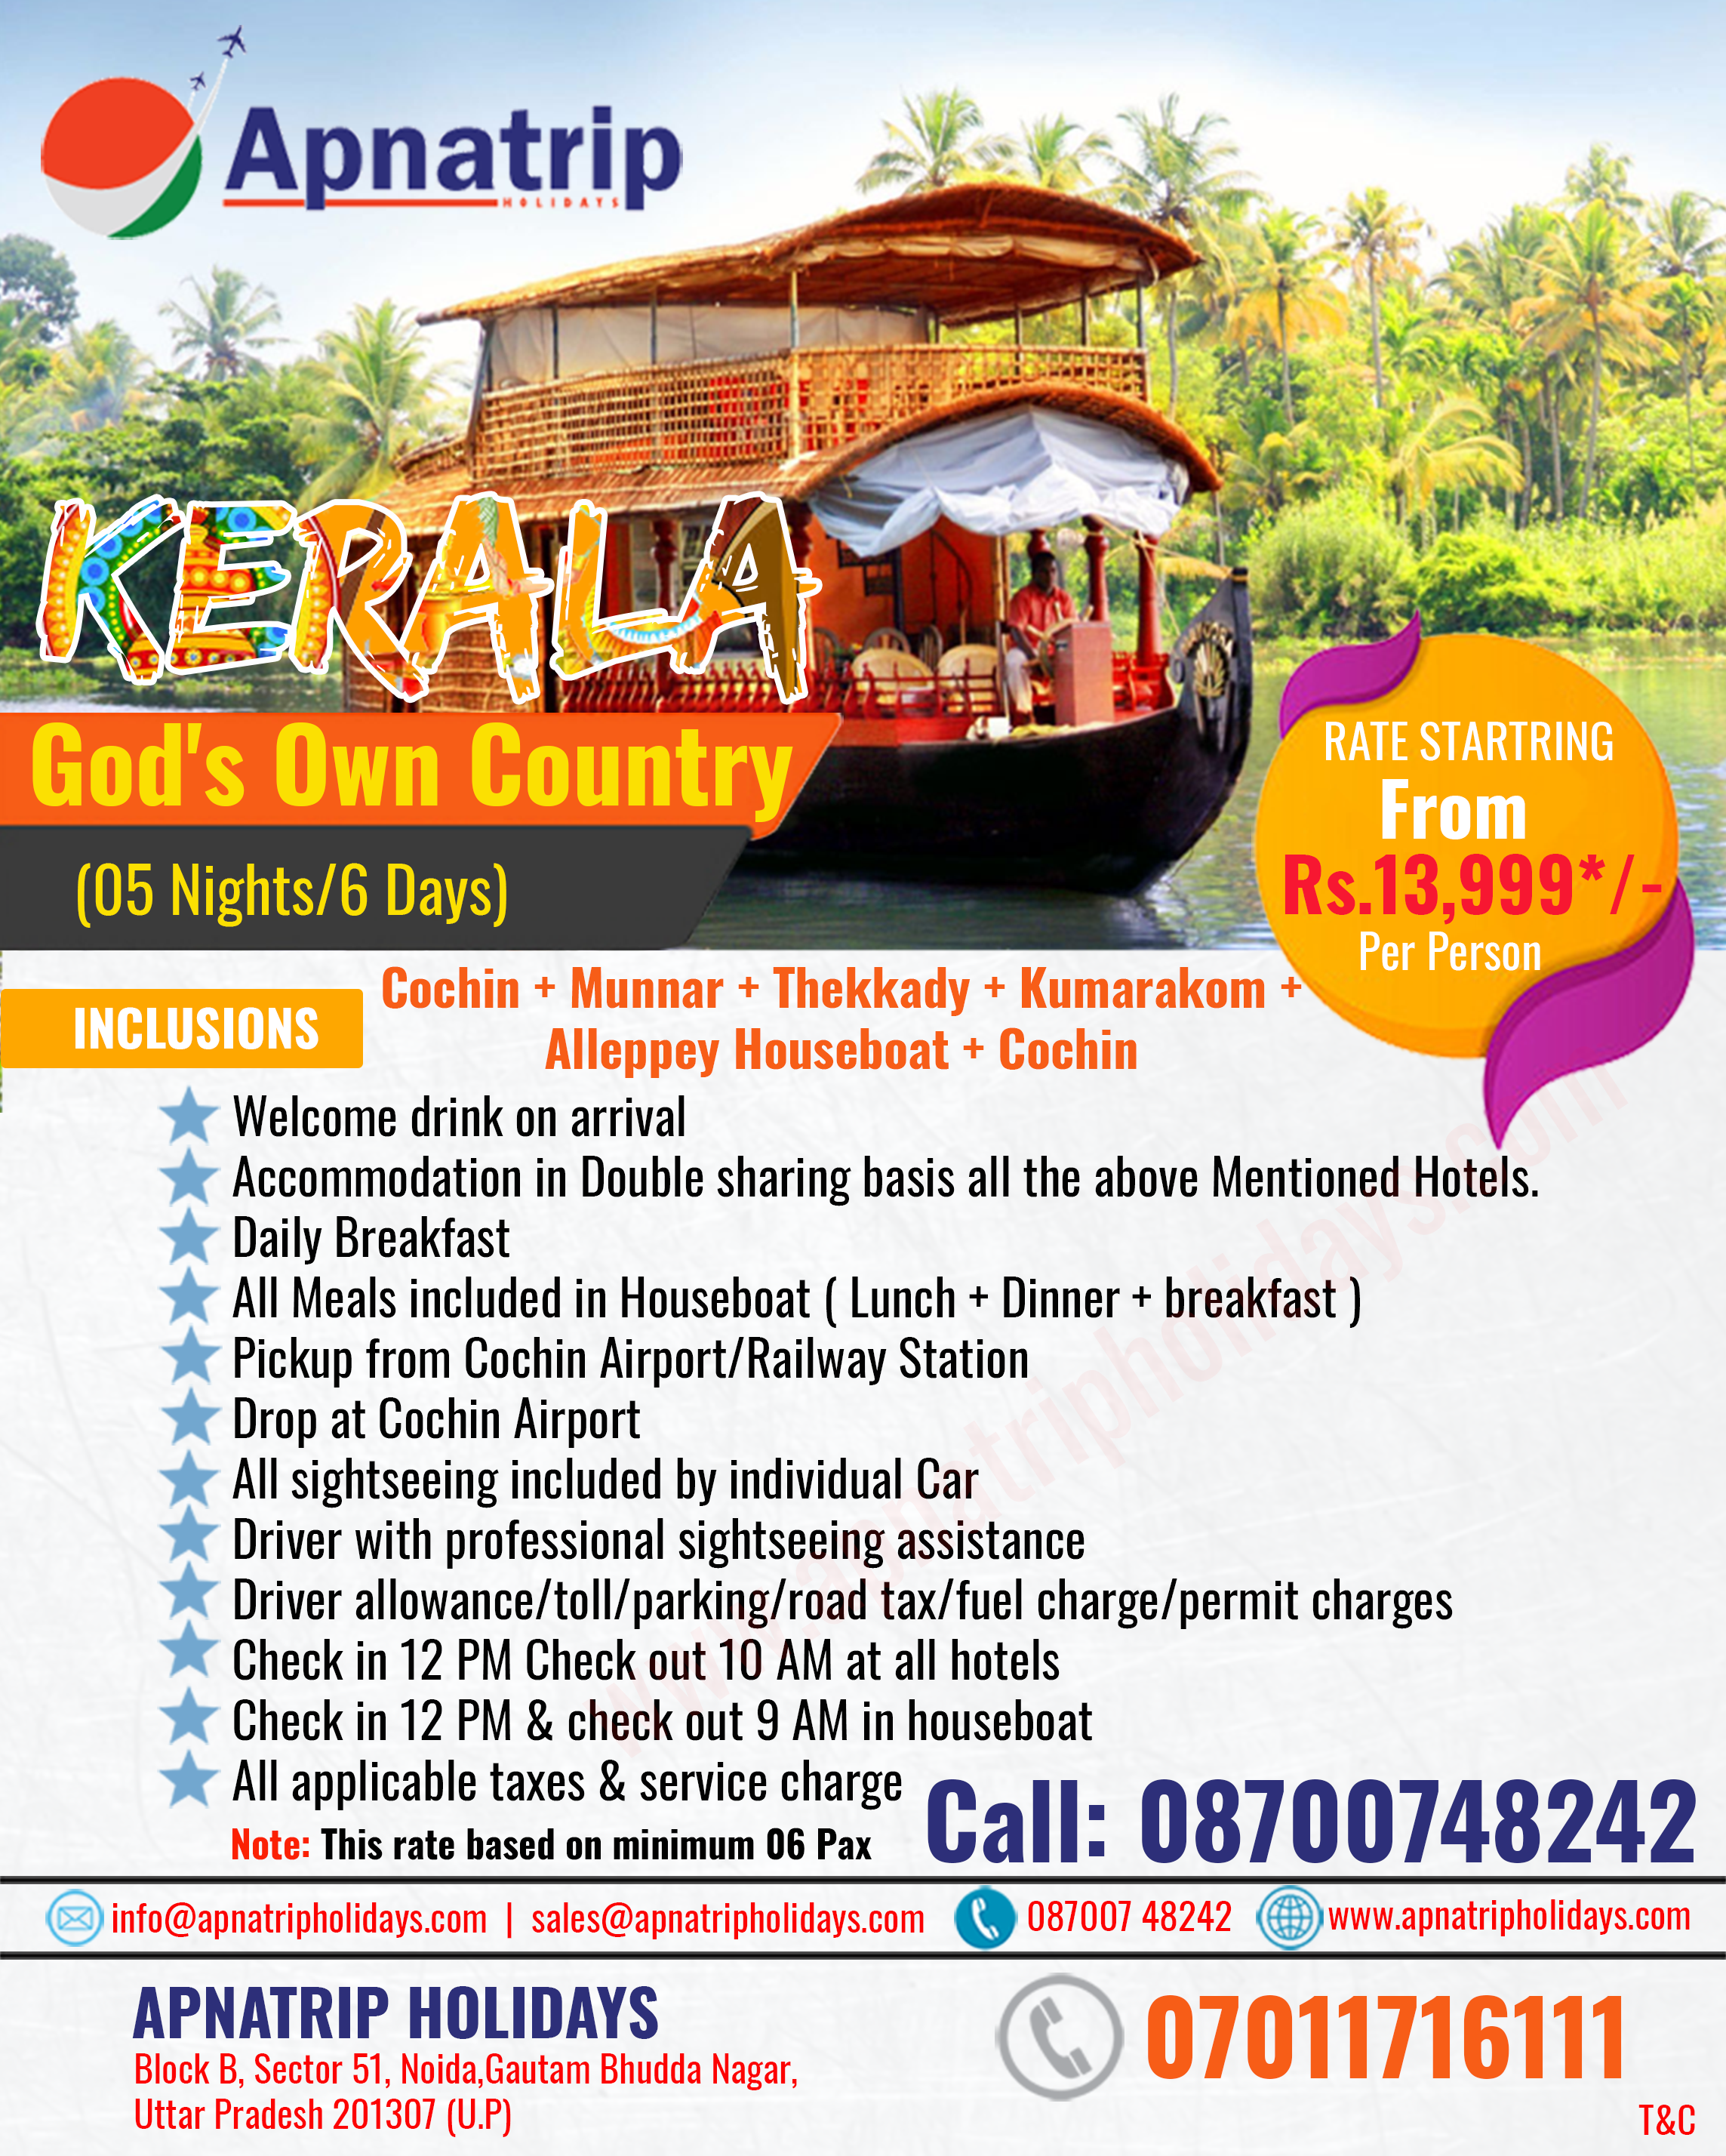 Apna Trip Holidays is a leading travel agency in india offers best